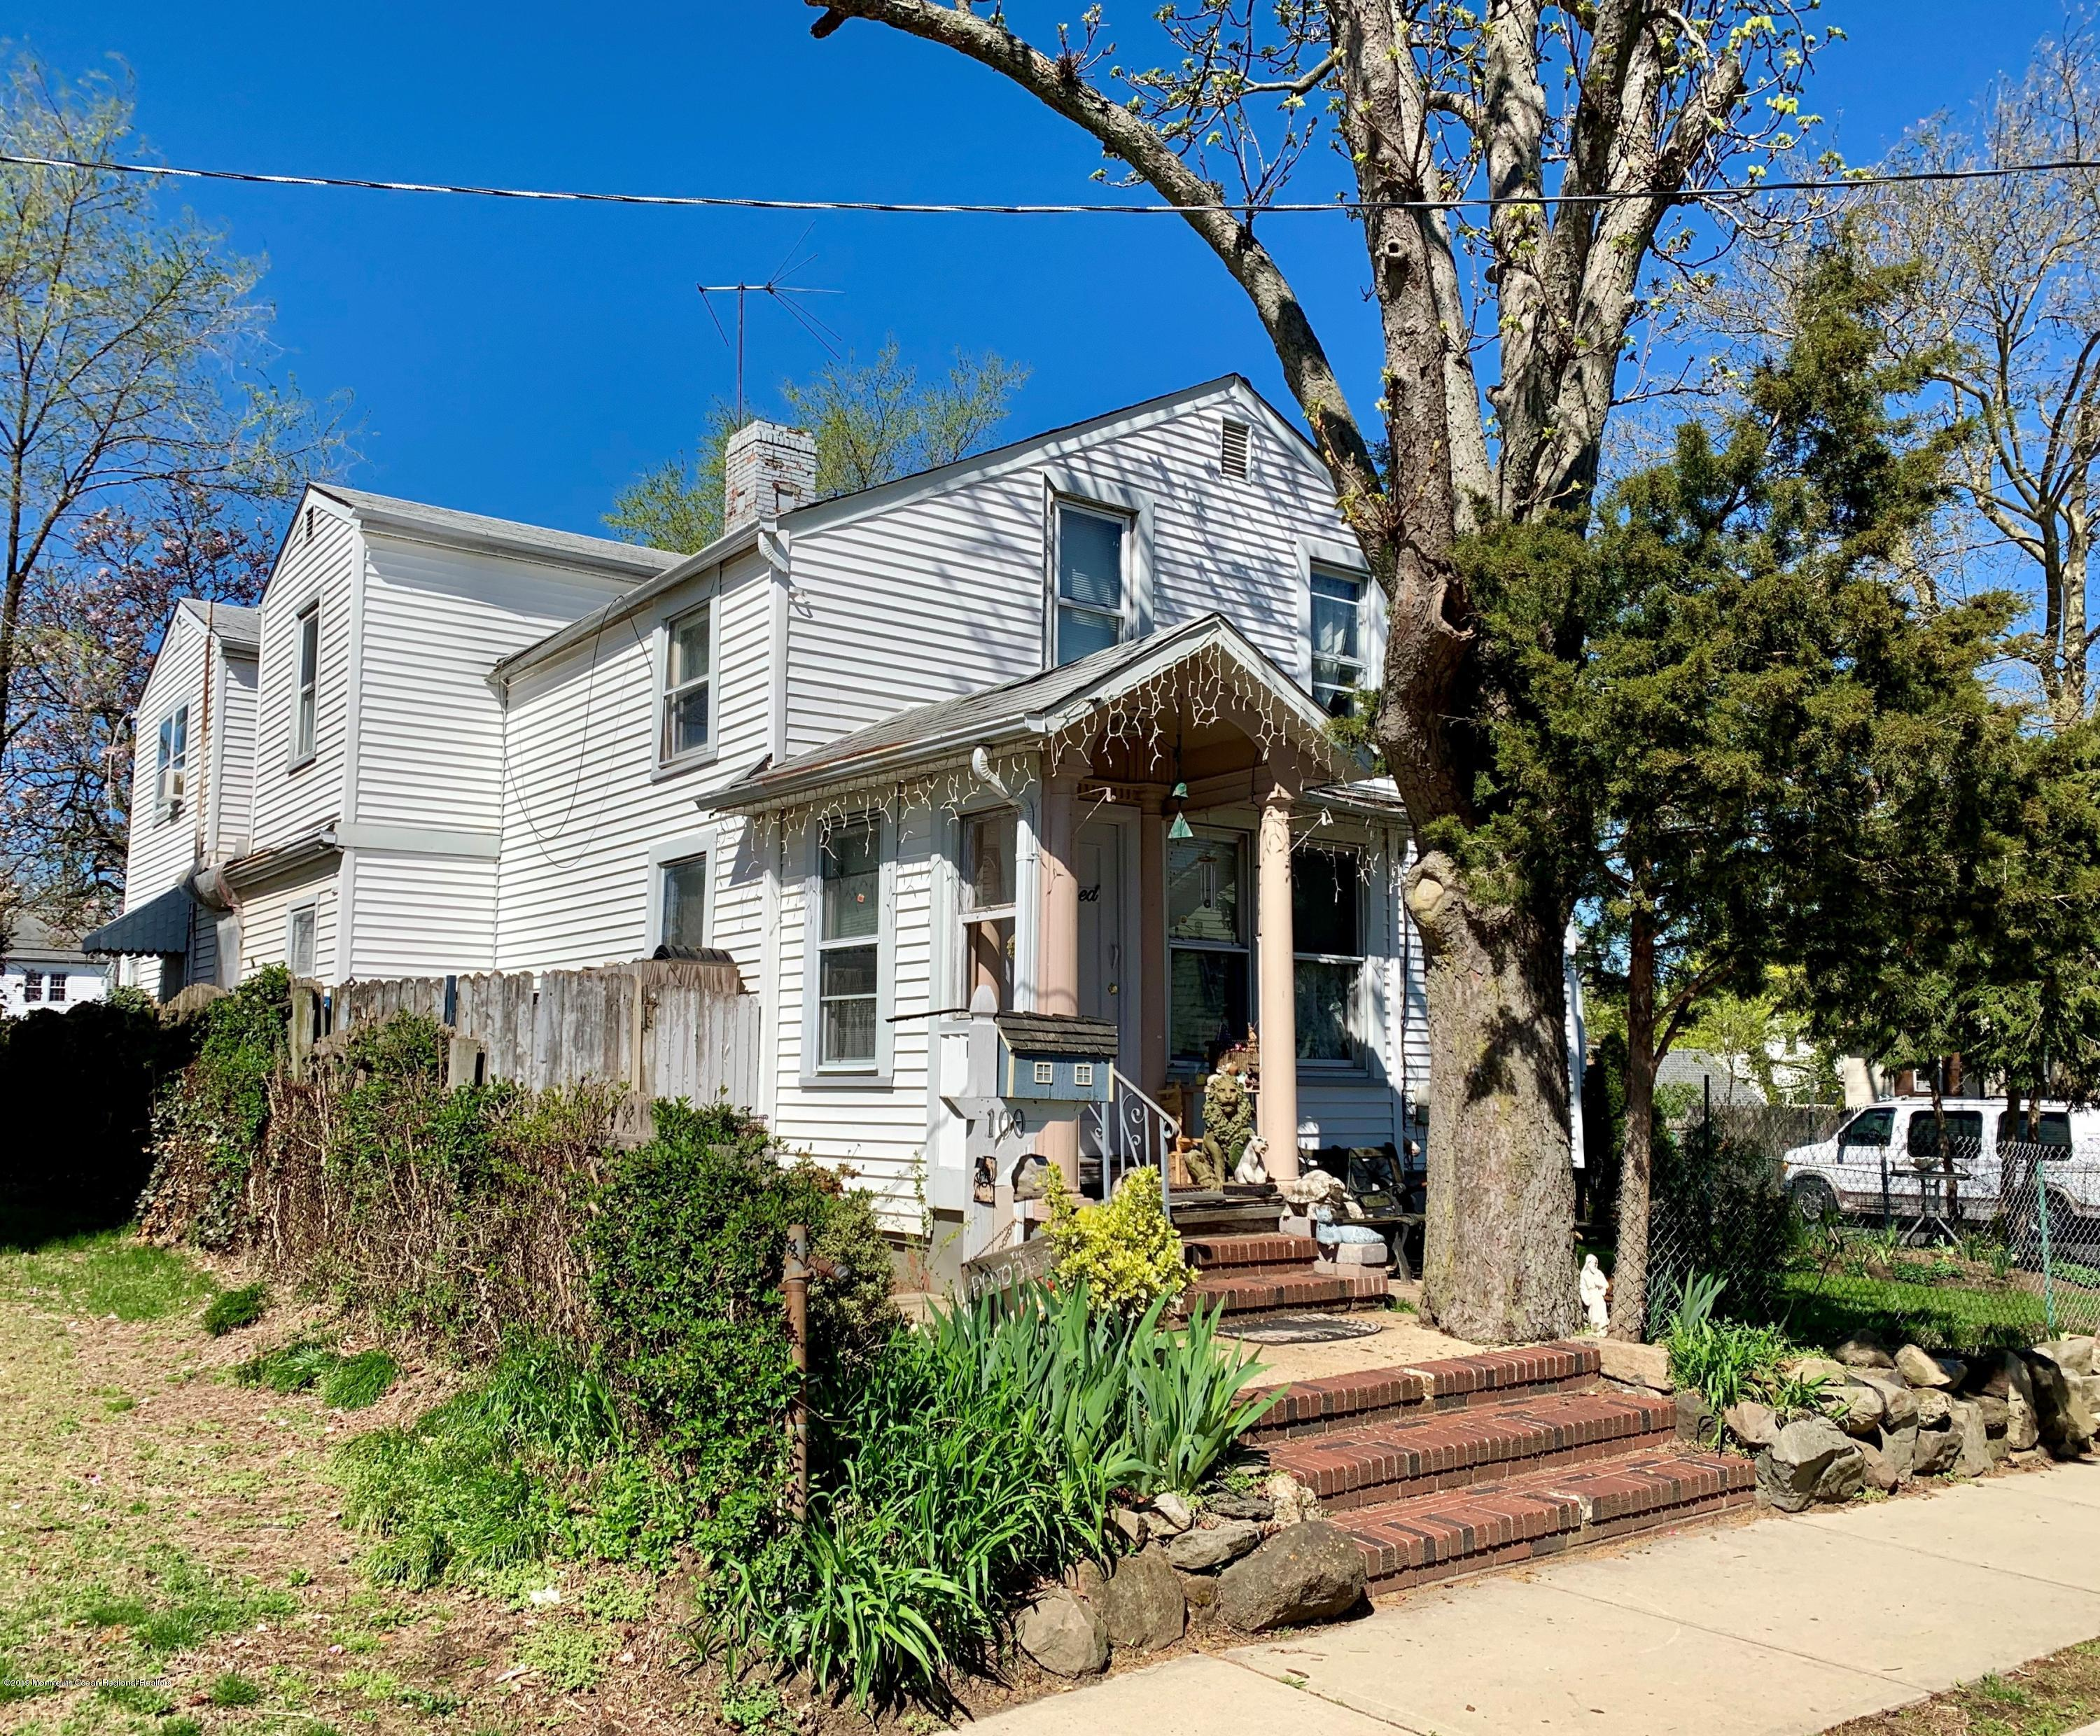 Photo of 100 Division Street, Keyport, NJ 07735